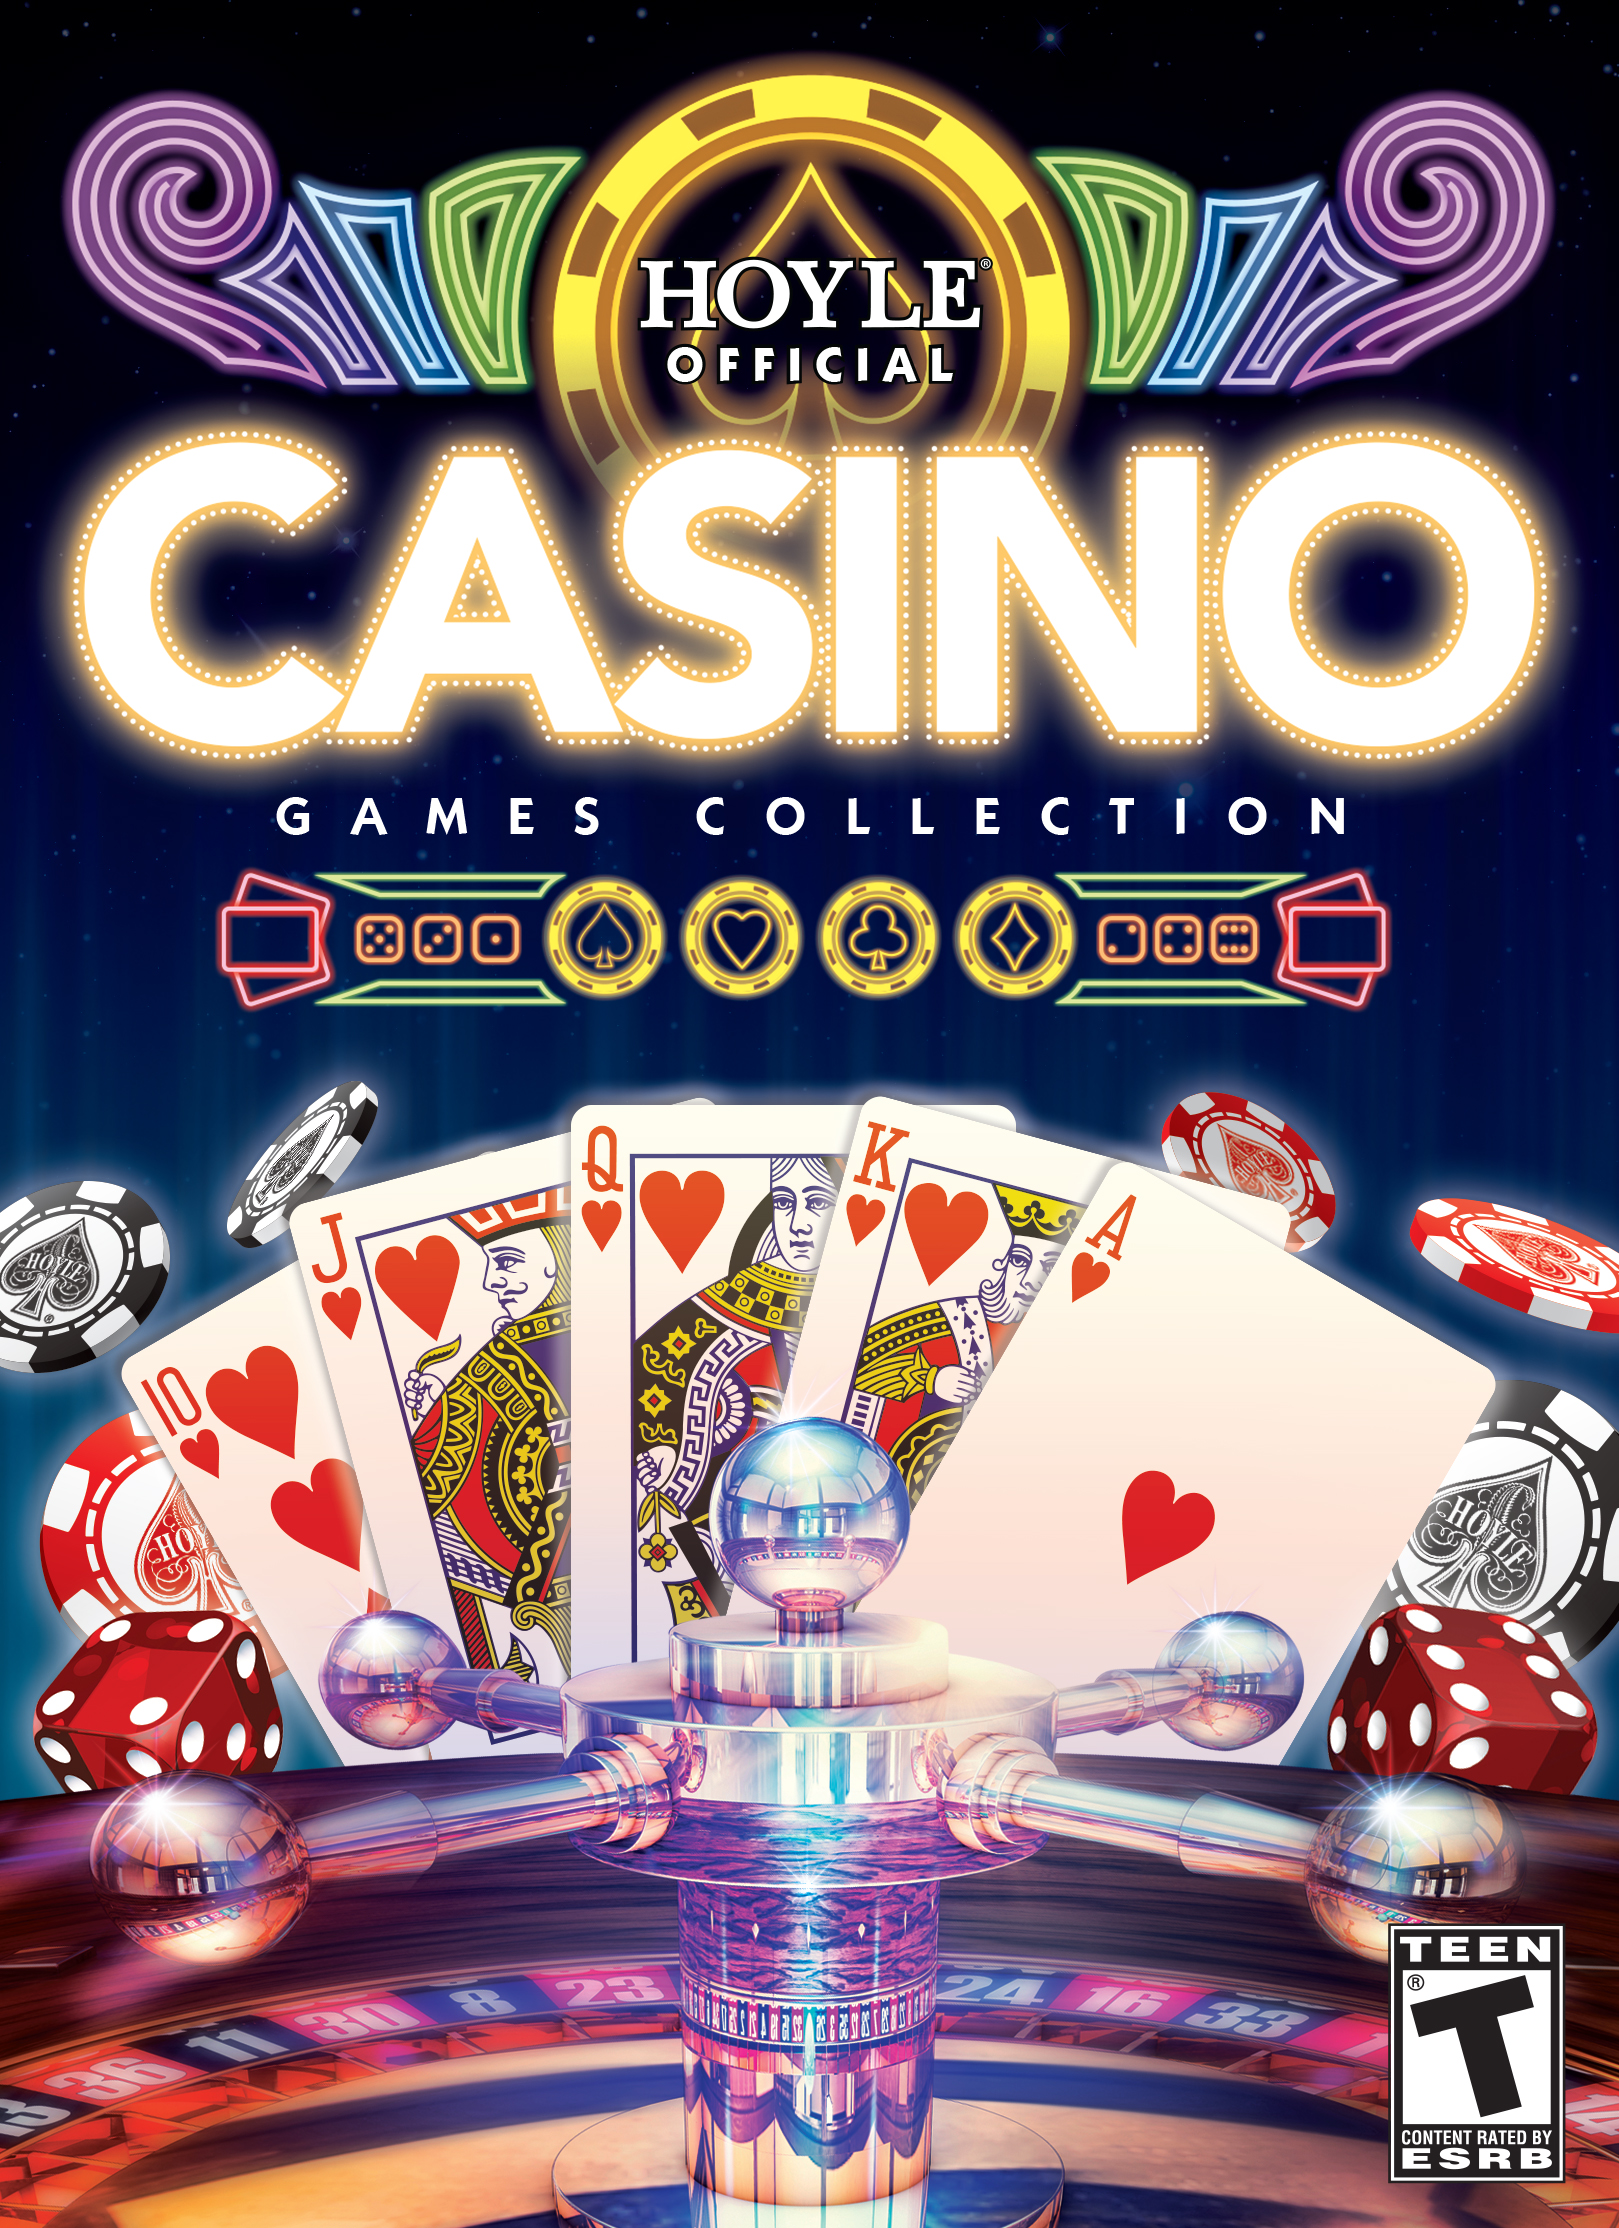 hoyle casino card game rules - 5